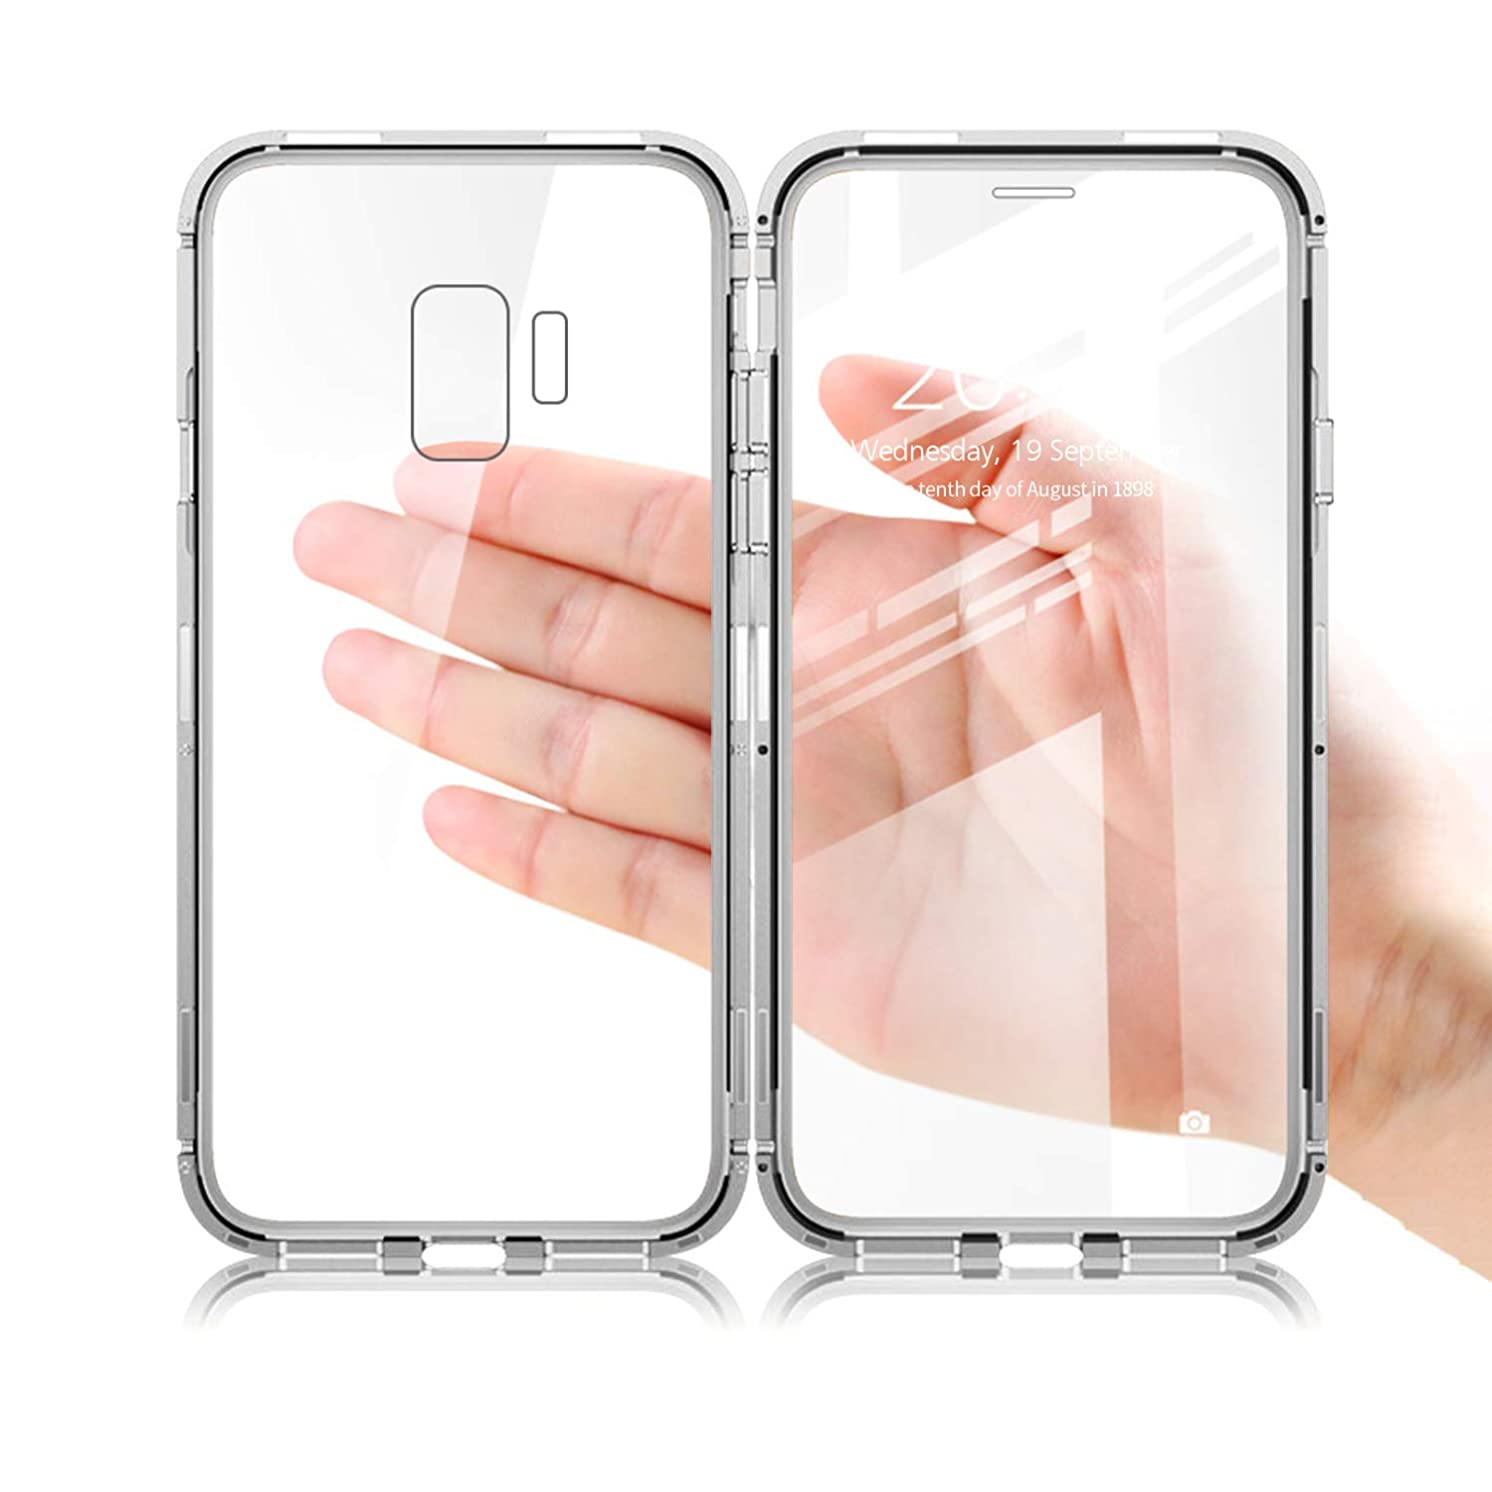 Samsung Galaxy Note 9 Case, NOHON [Full Body] Slim Fit Ultra-Thin Lightweight Magnetic Case, [Metal Frame] [Clear Tempered Glass Back and Front] [Support Wireless Charging] for Galaxy Note 9 (Silver)